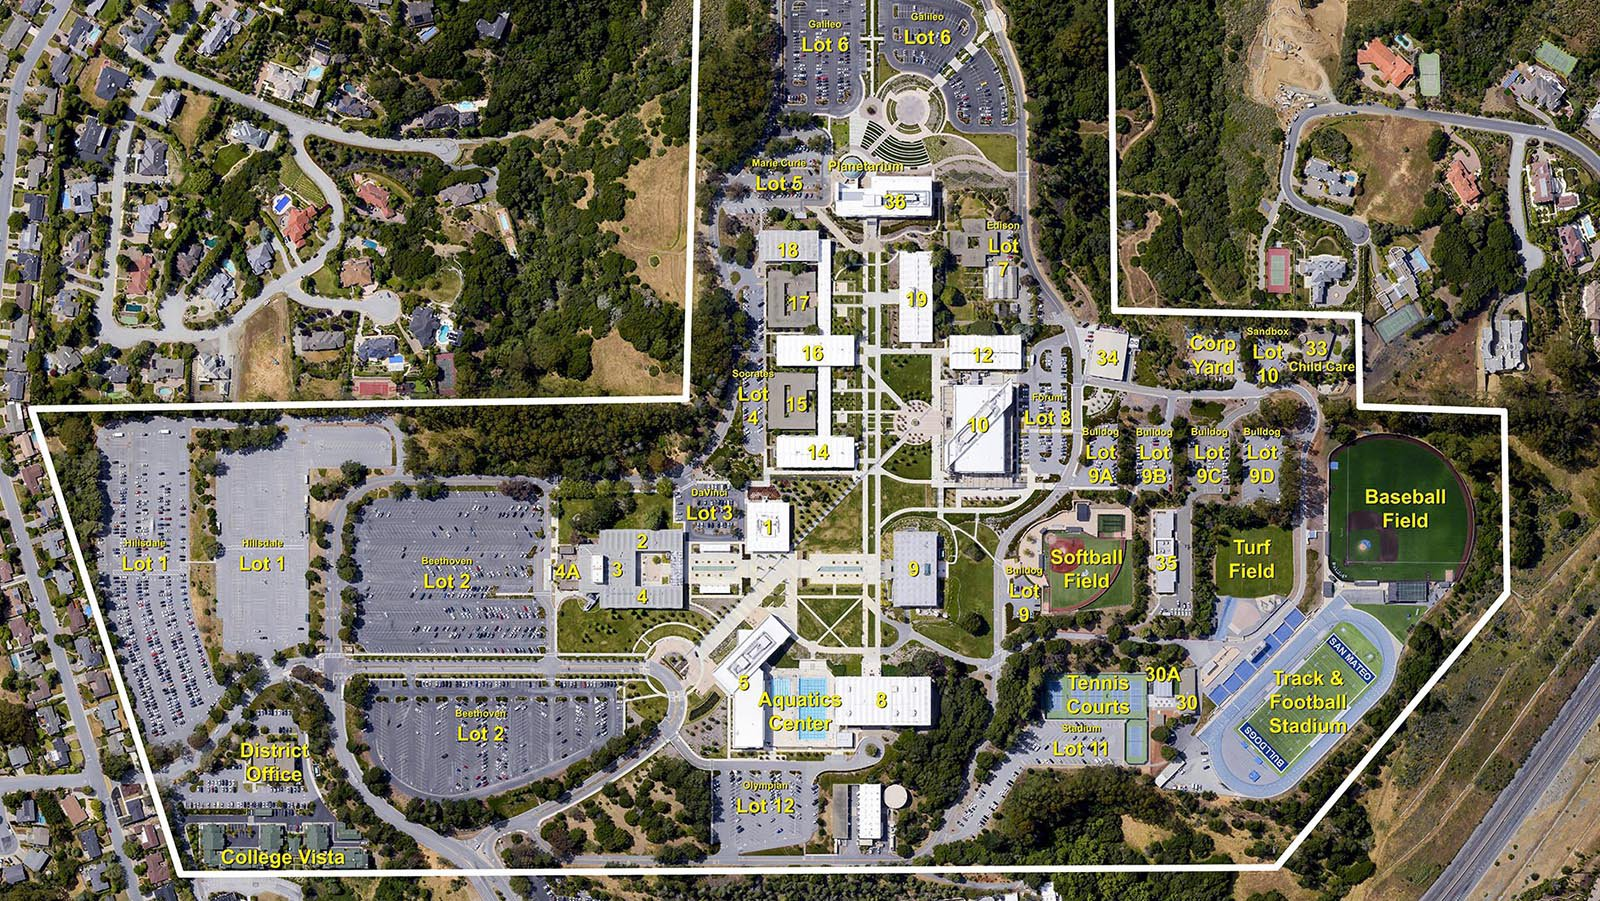 Services aerial vertical photo of the College of San Mateo, which was labeled and delivered as an aerial photo map